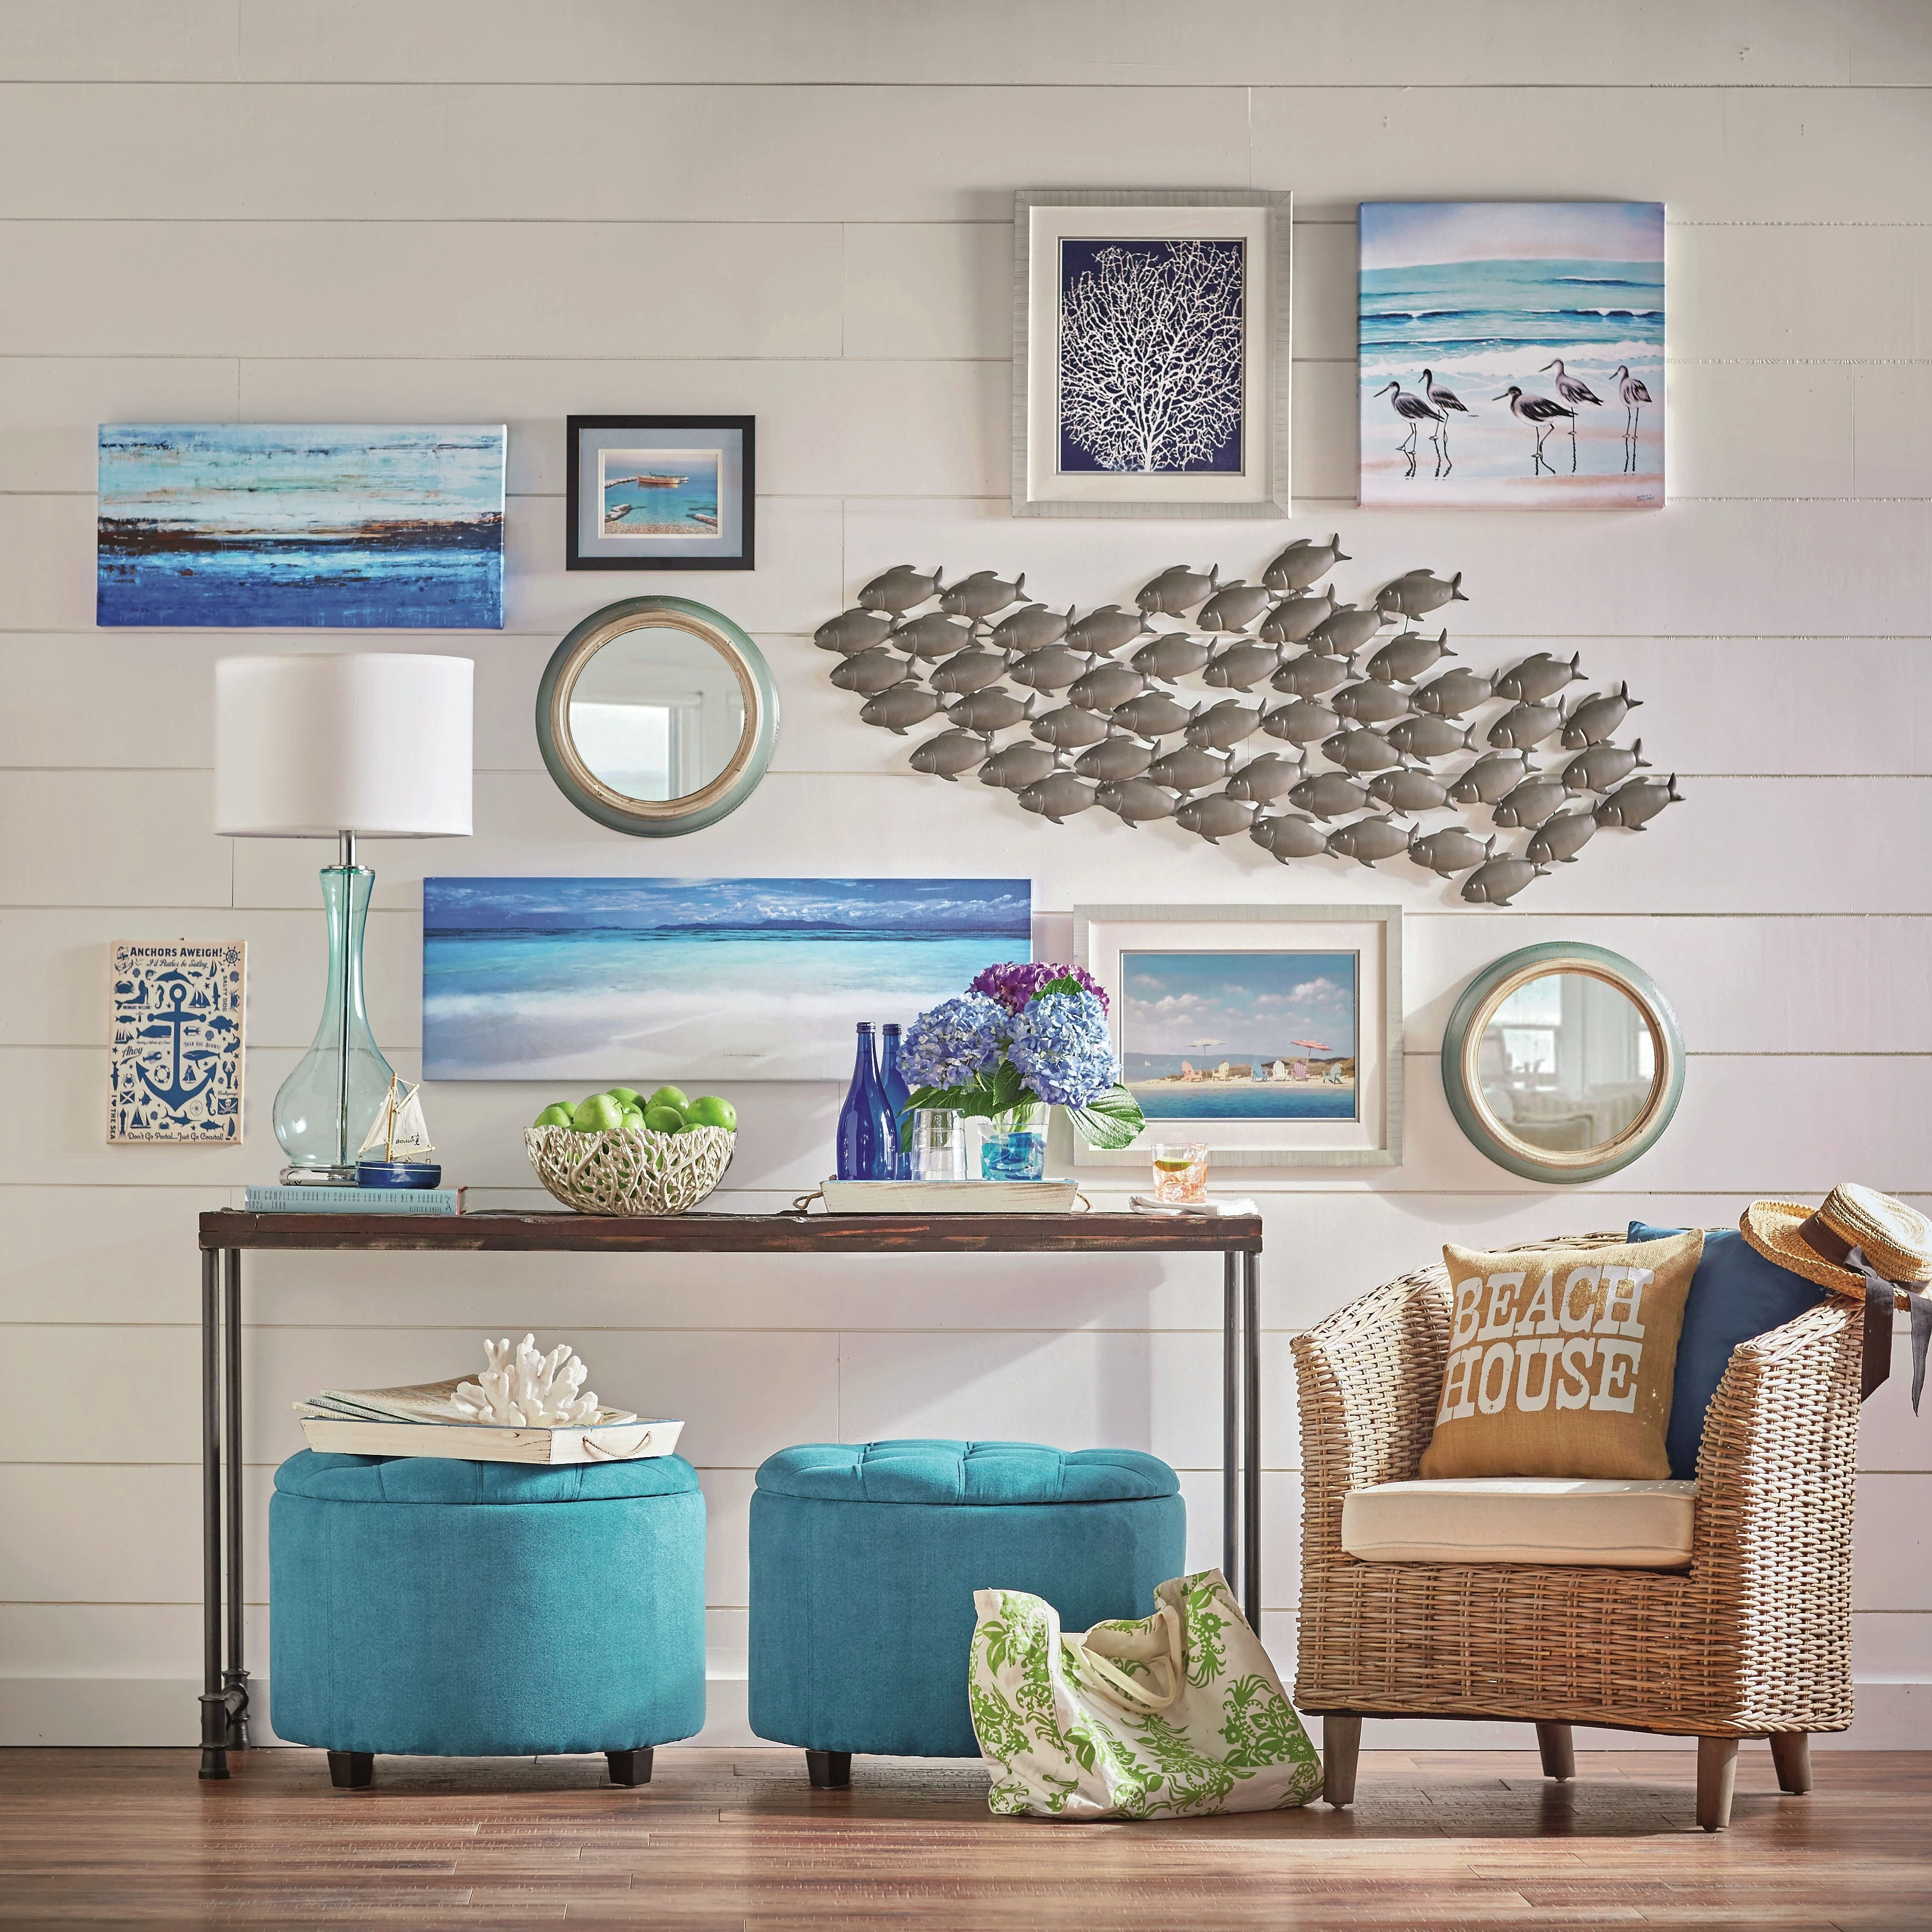 Elegant Coastal Wall Decor 9 Images On | Relaxbeautyspa Intended For Newest Large Coastal Wall Art (Gallery 9 of 20)